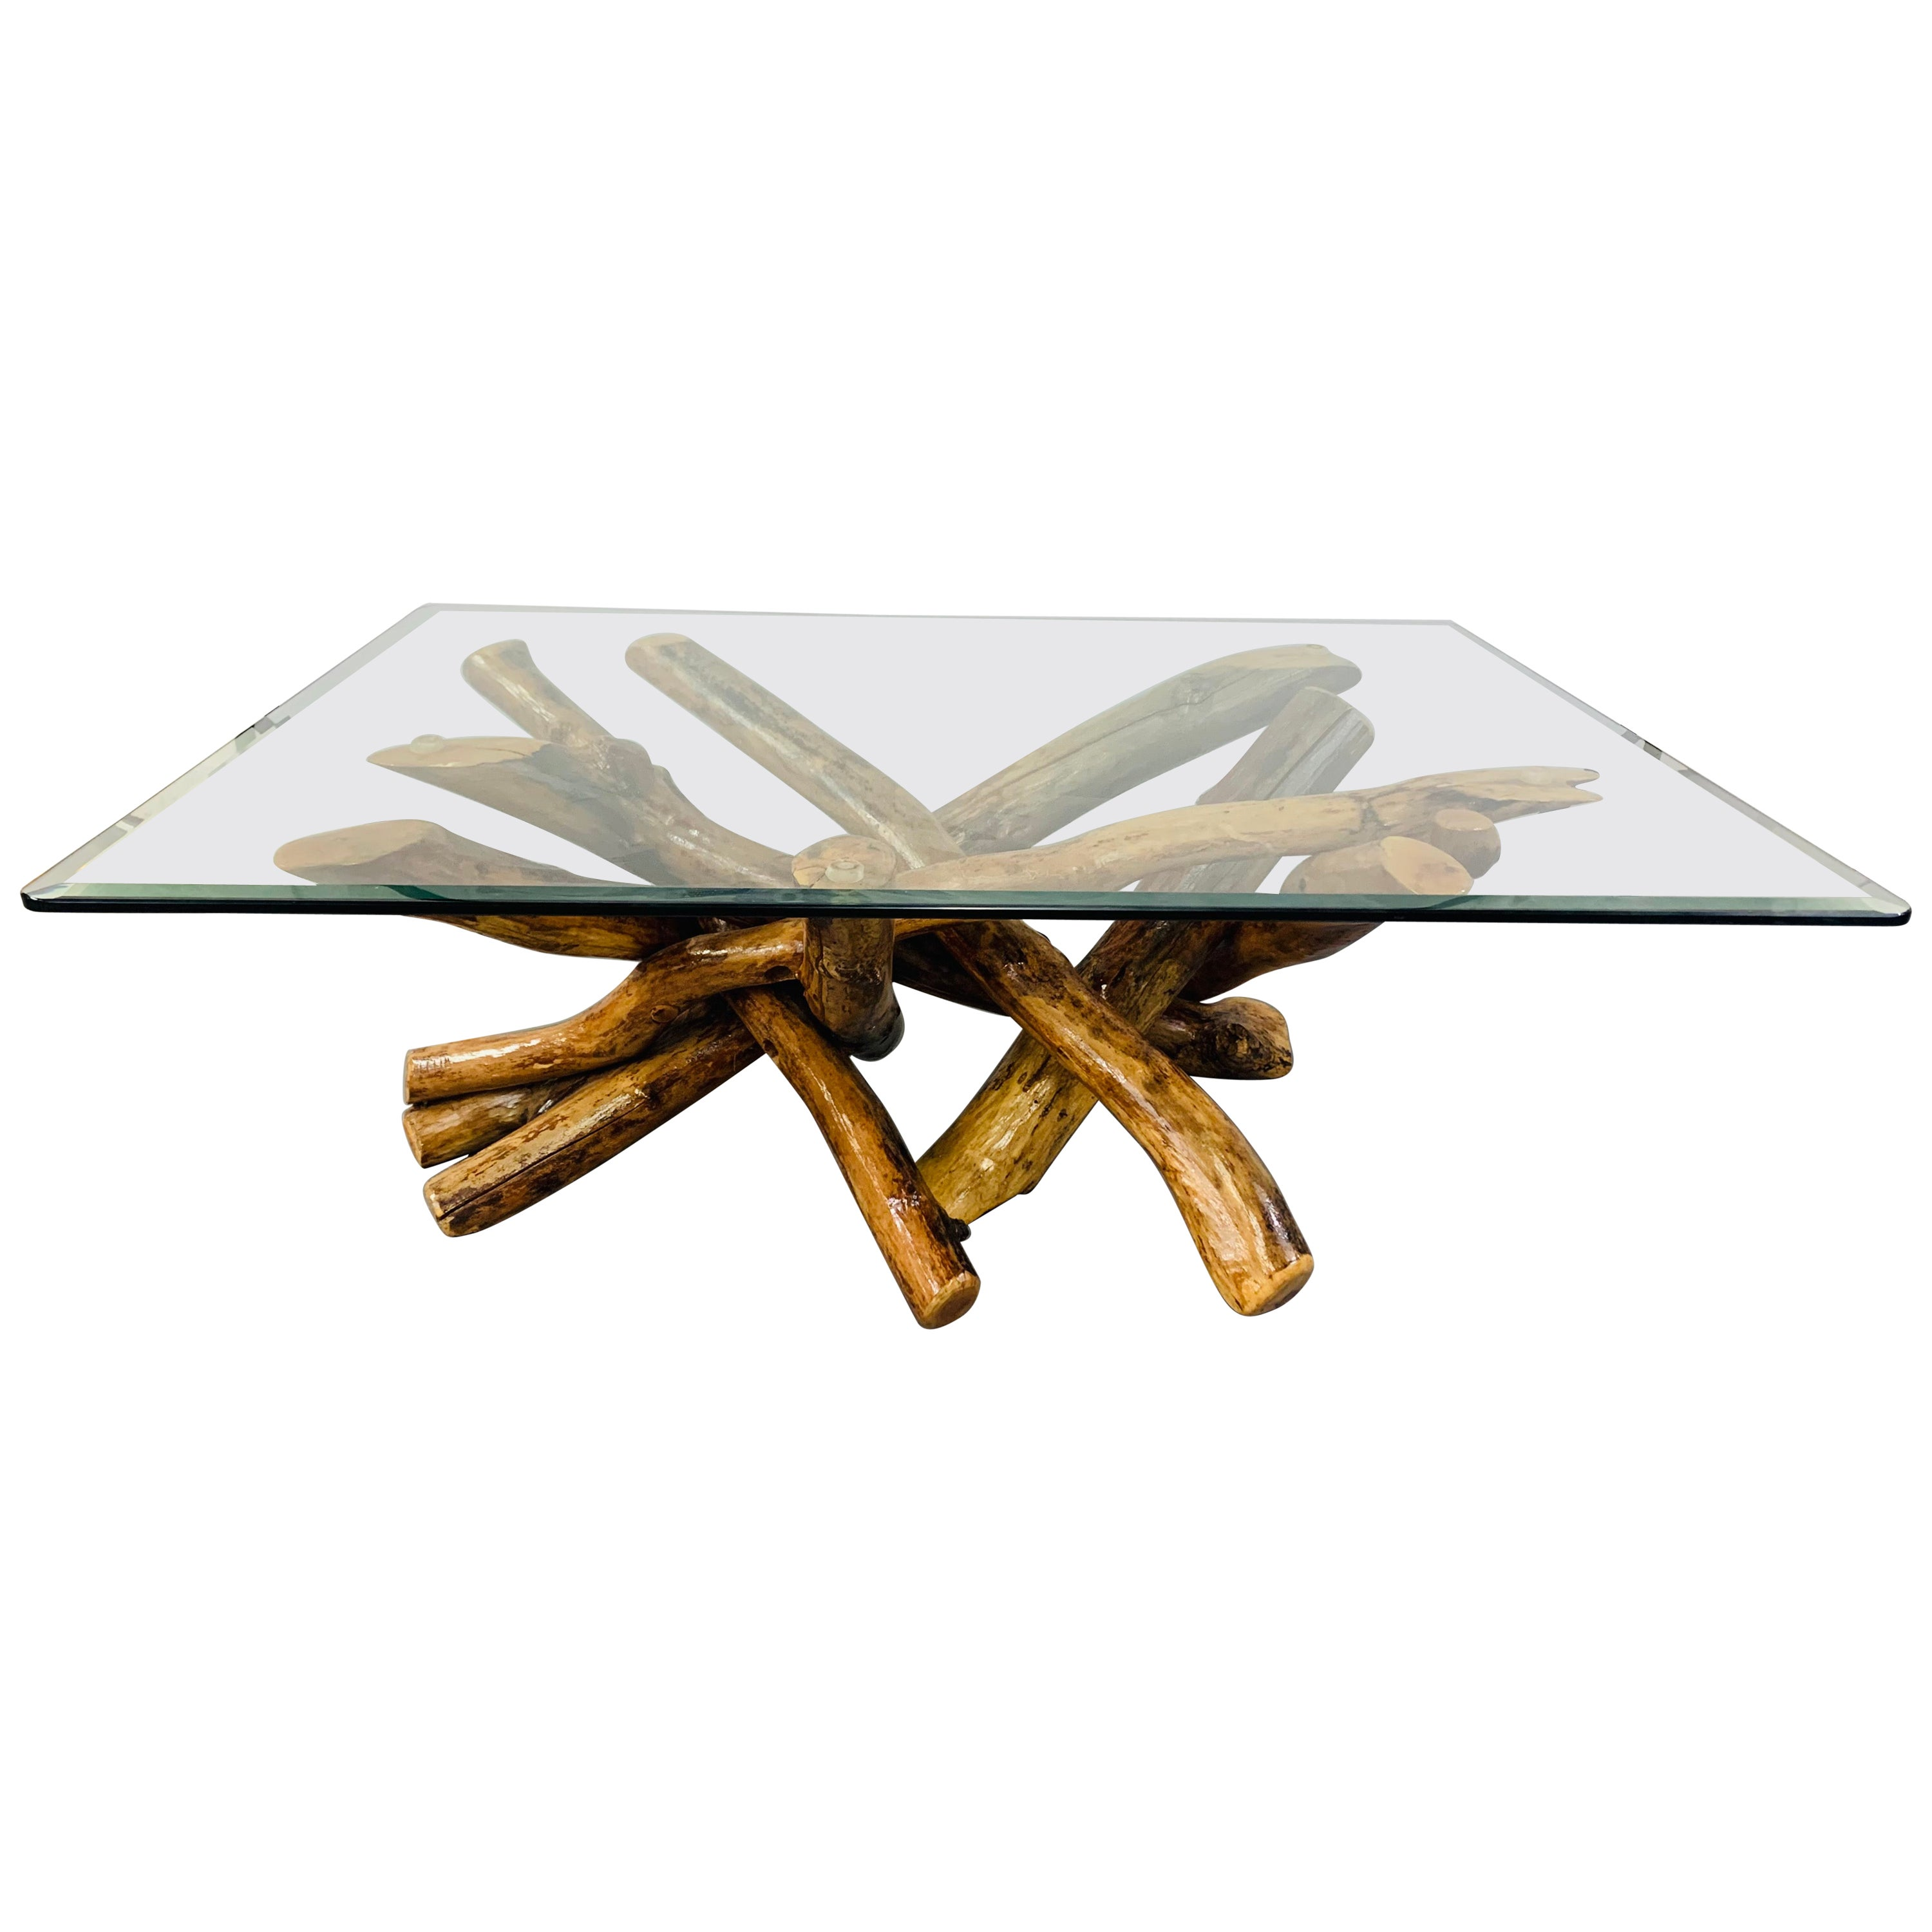 Rustic Organic Design Maple Log Wood Coffee or Cocktail Table with Glass Top